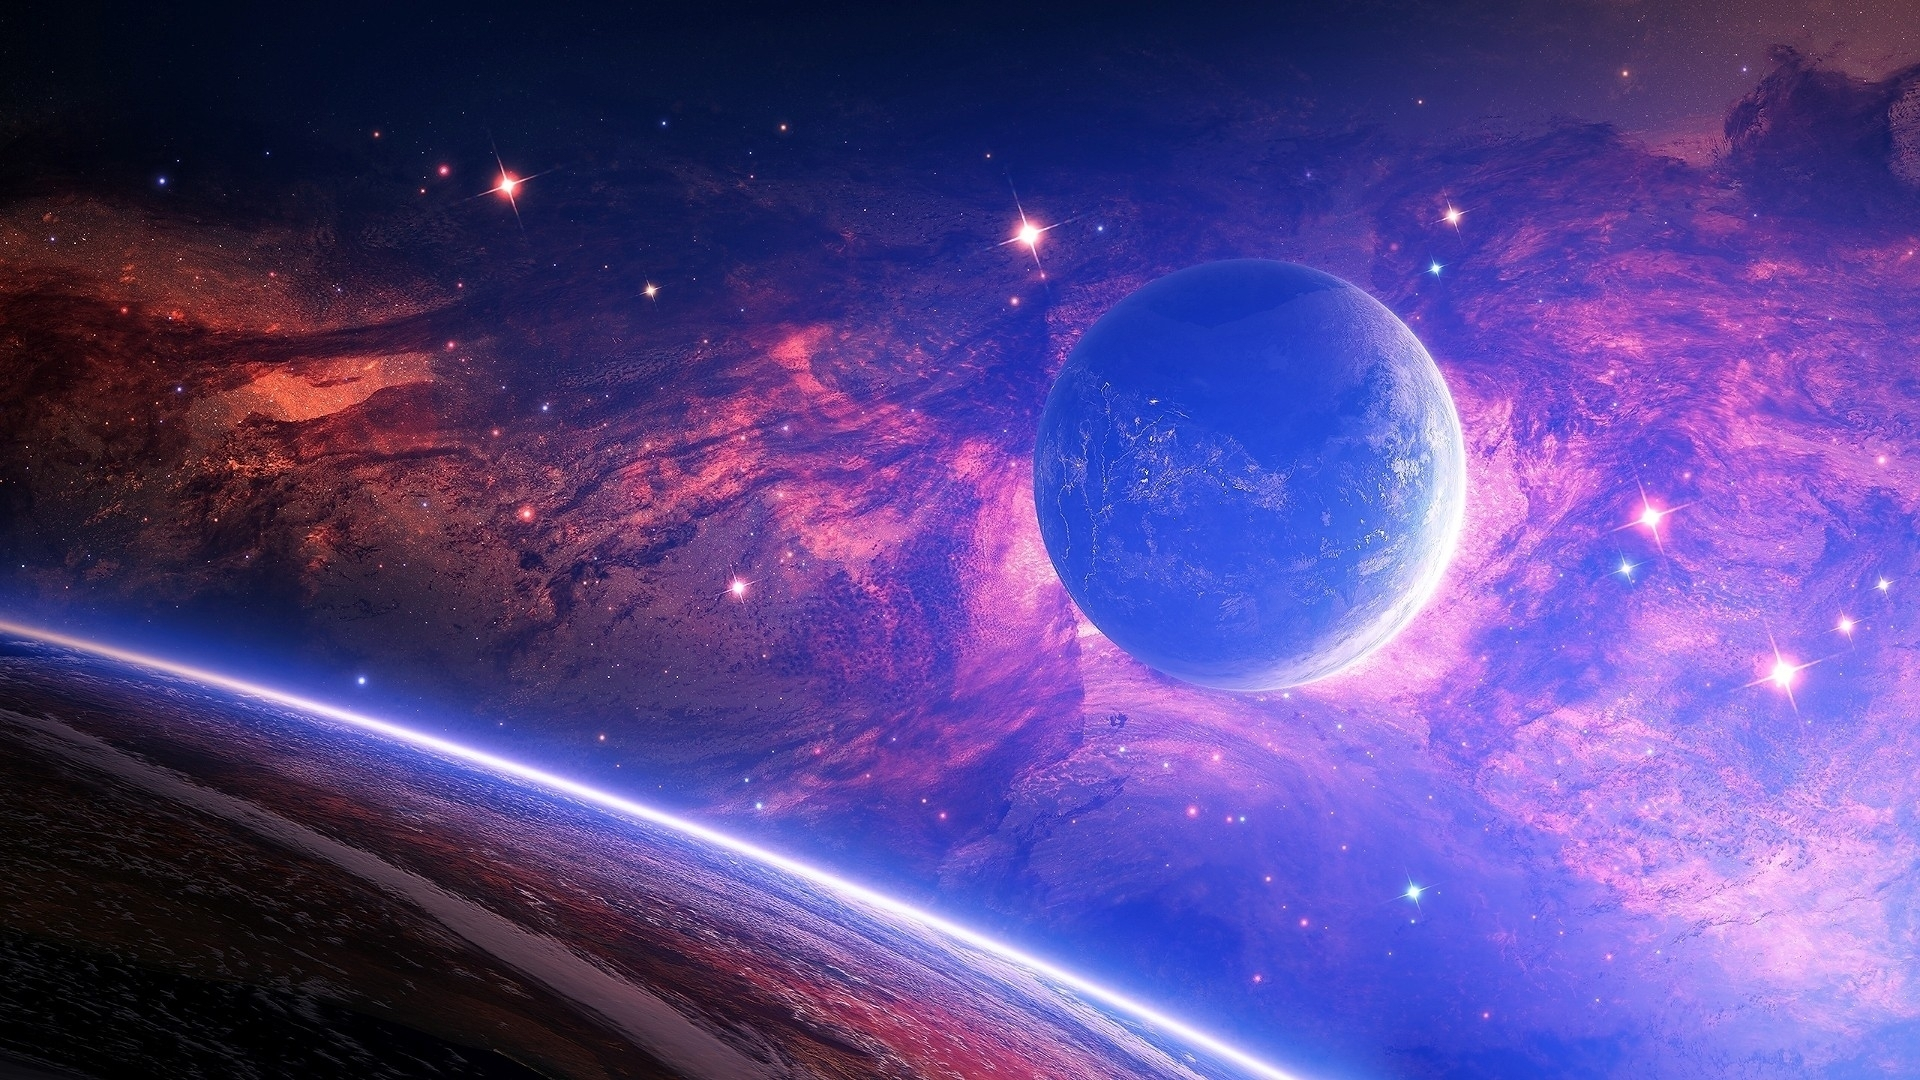 space hd wallpaper group with 47 items